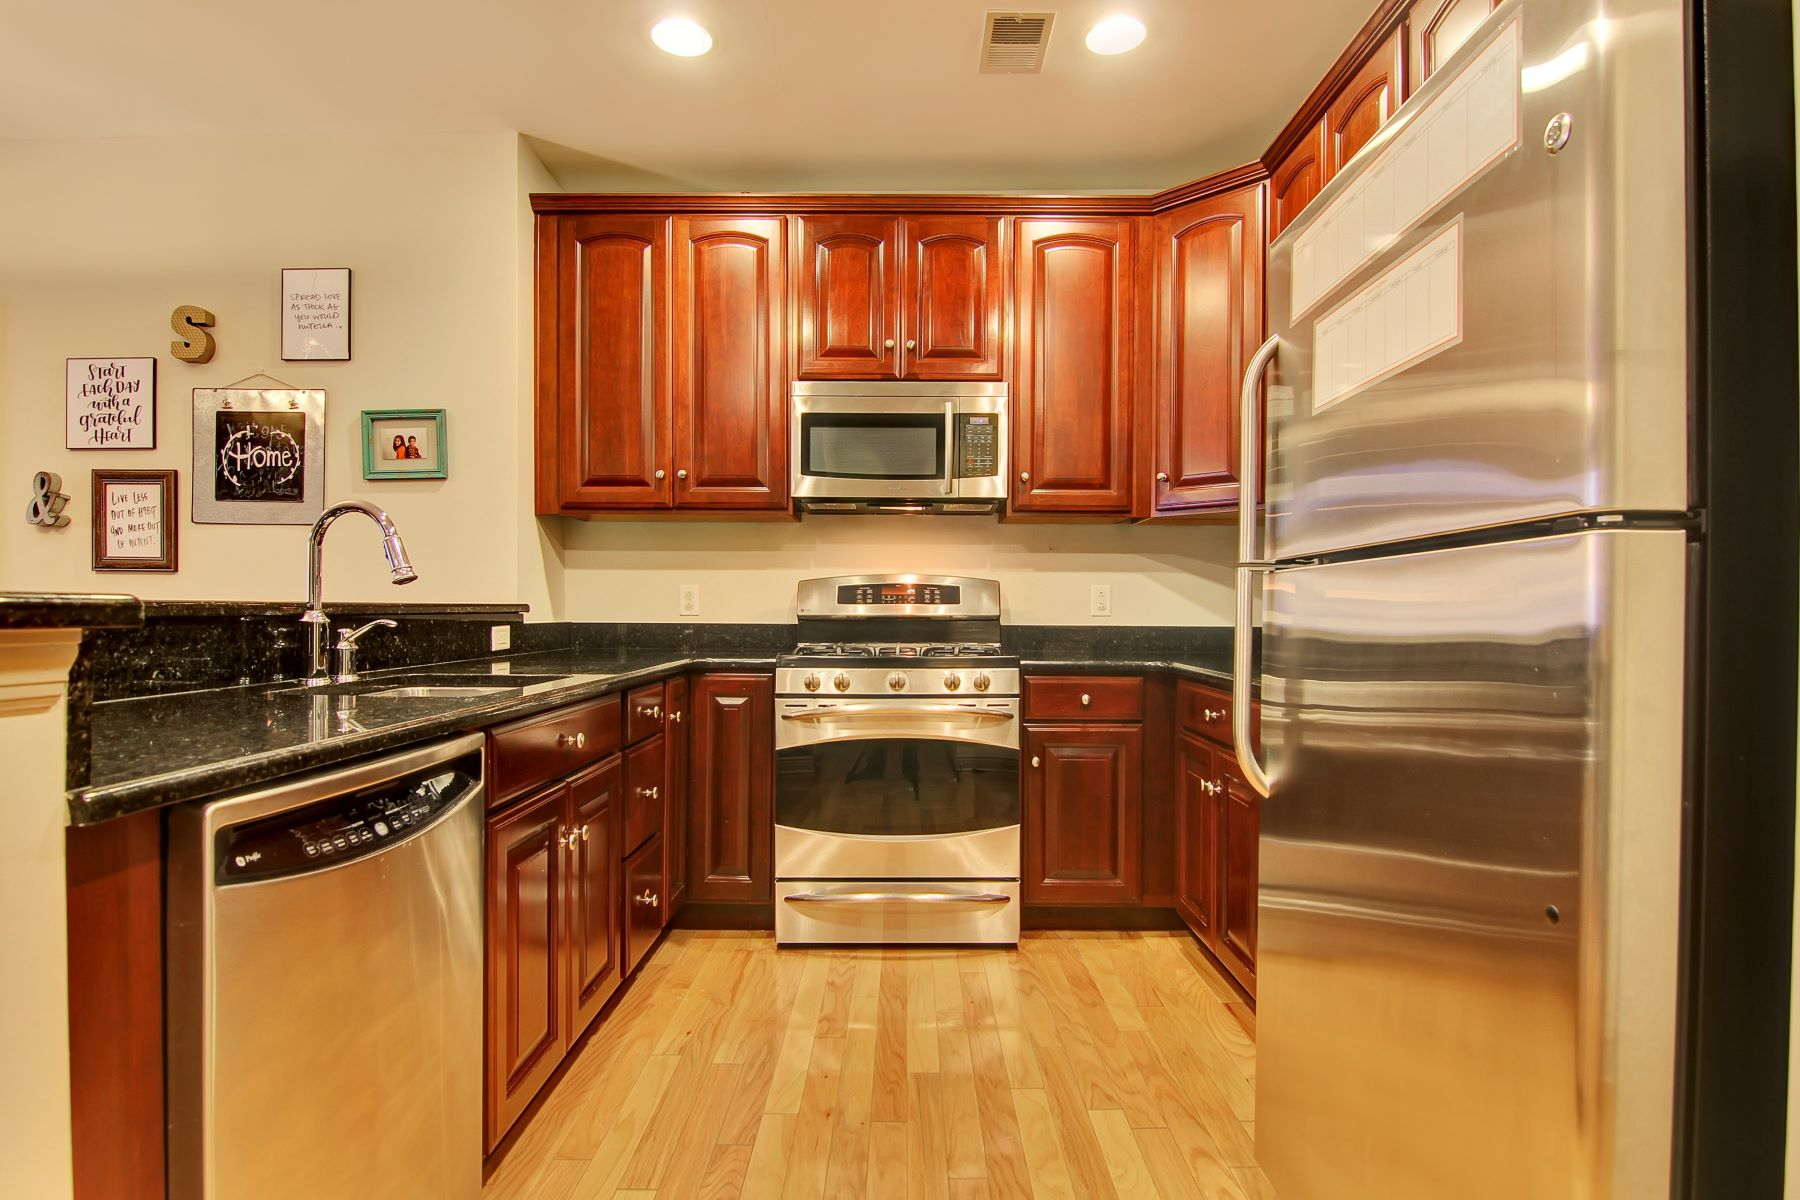 Condominium for Sale at Beautiful Two Bedroom 7400 River Road #330 North Bergen, New Jersey 07047 United States